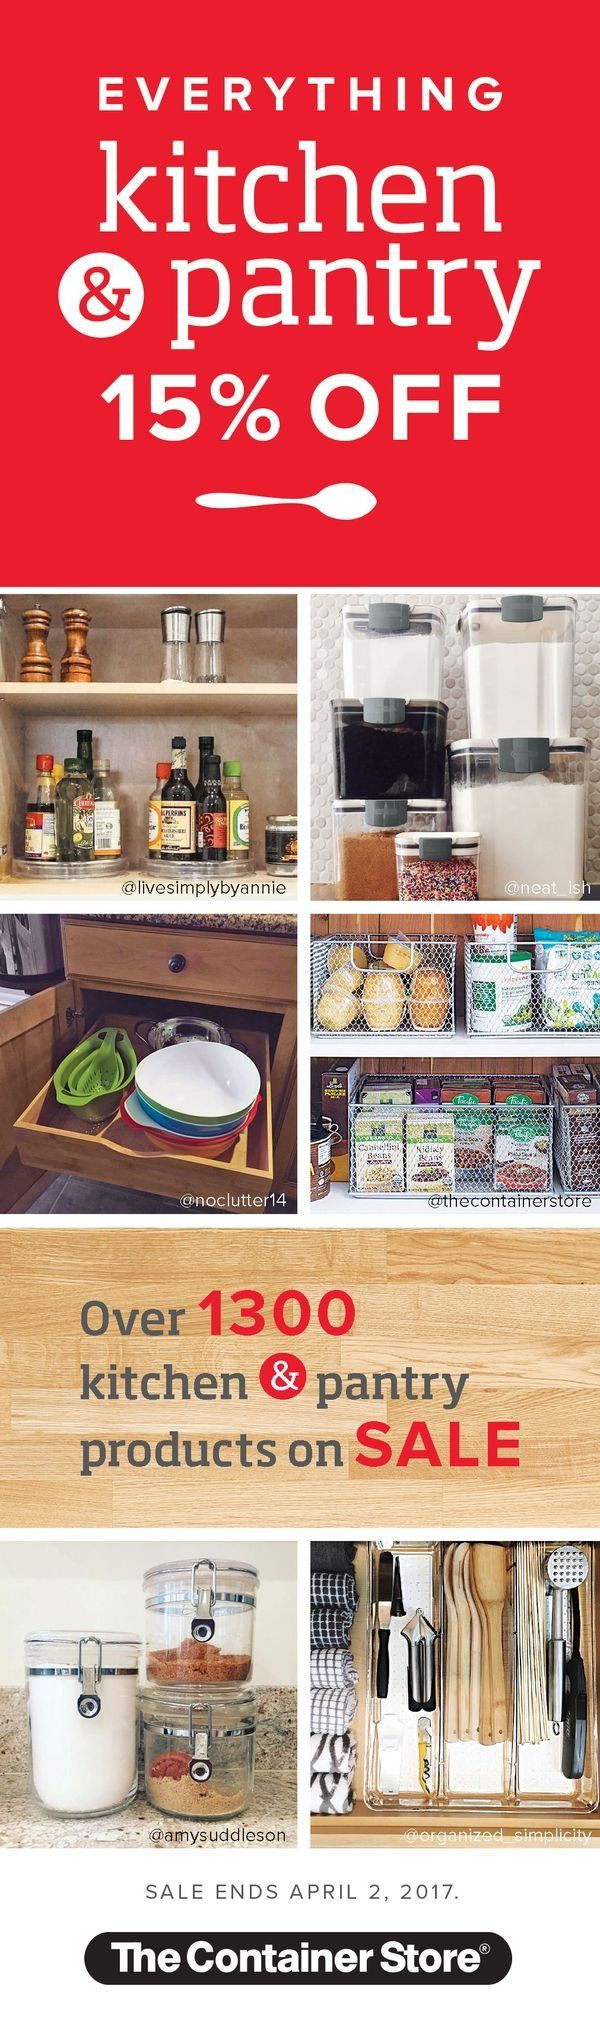 everything in kitchen and pantry is off with more than products iu0027s the perfect time to get your kitchen organized but hurry sale ends april